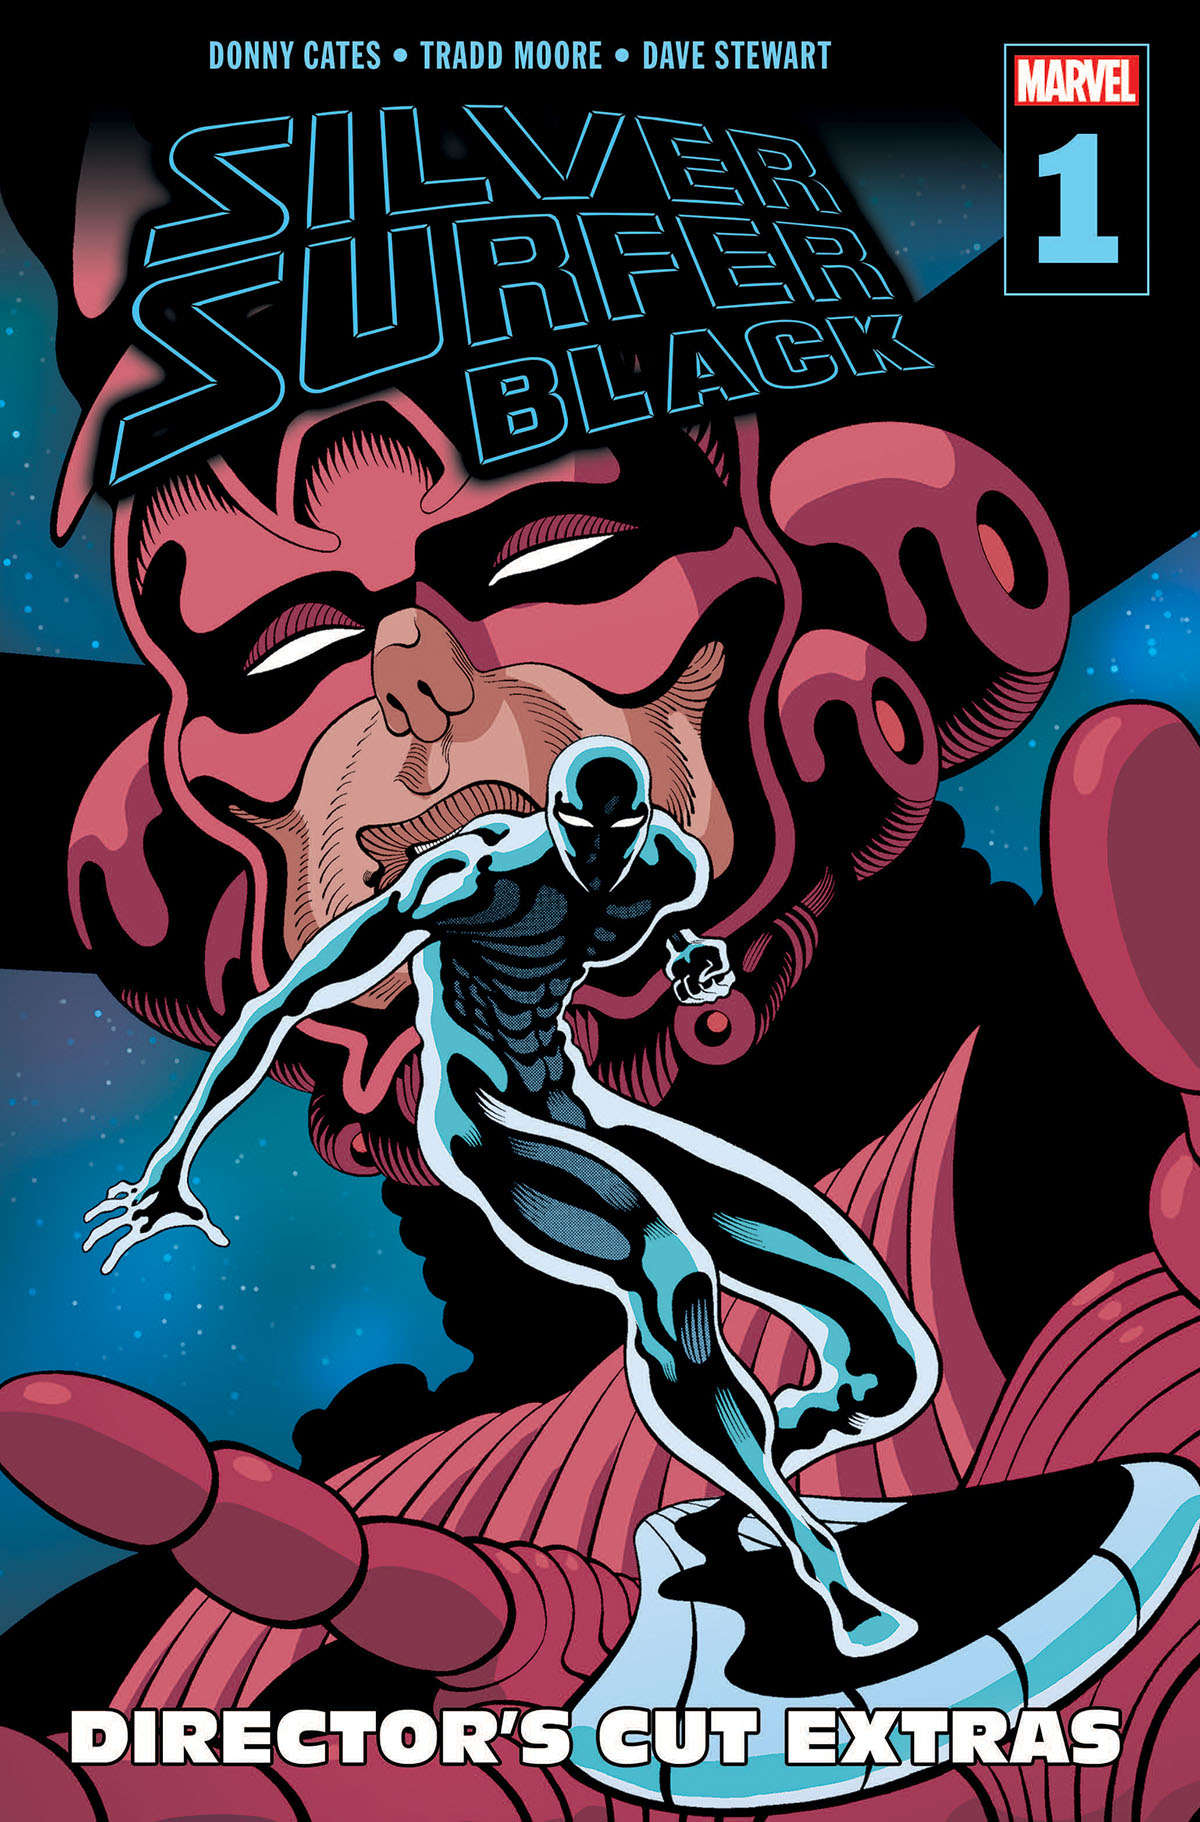 Silver Surfer Black #1 gets a director's cut